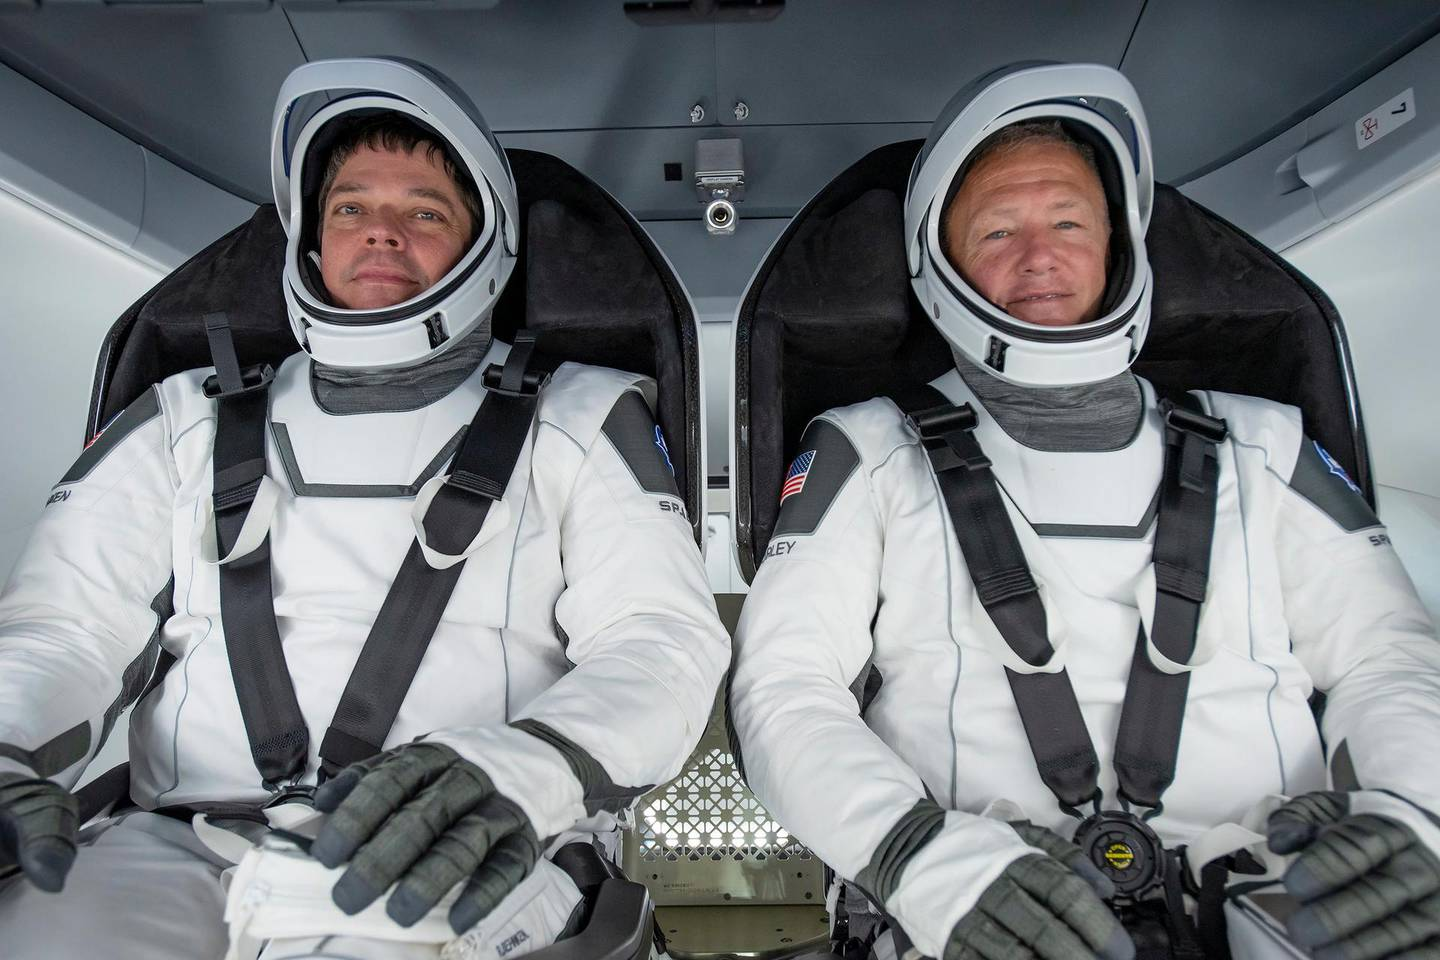 epa08446412 (FILE) - A handout photo made available by SpaceX shows NASA astronauts Bob Behnken (L) and Doug Hurley participating in a test at a SpaceX processing facility on Cape Canaveral Air Force Station in Florida, USA, 30 March 2020 (reissued 27 May 2020). NASA astronauts Robert Behnken and Douglas Hurley are scheduled to ride the Crew Dragon spacecraft to the International Space Station at 4:33 p.m. EDT on 27 May. The launch would be the first manned space flight from US soil since 2011.  EPA/SPACEX HANDOUT  HANDOUT EDITORIAL USE ONLY/NO SALES